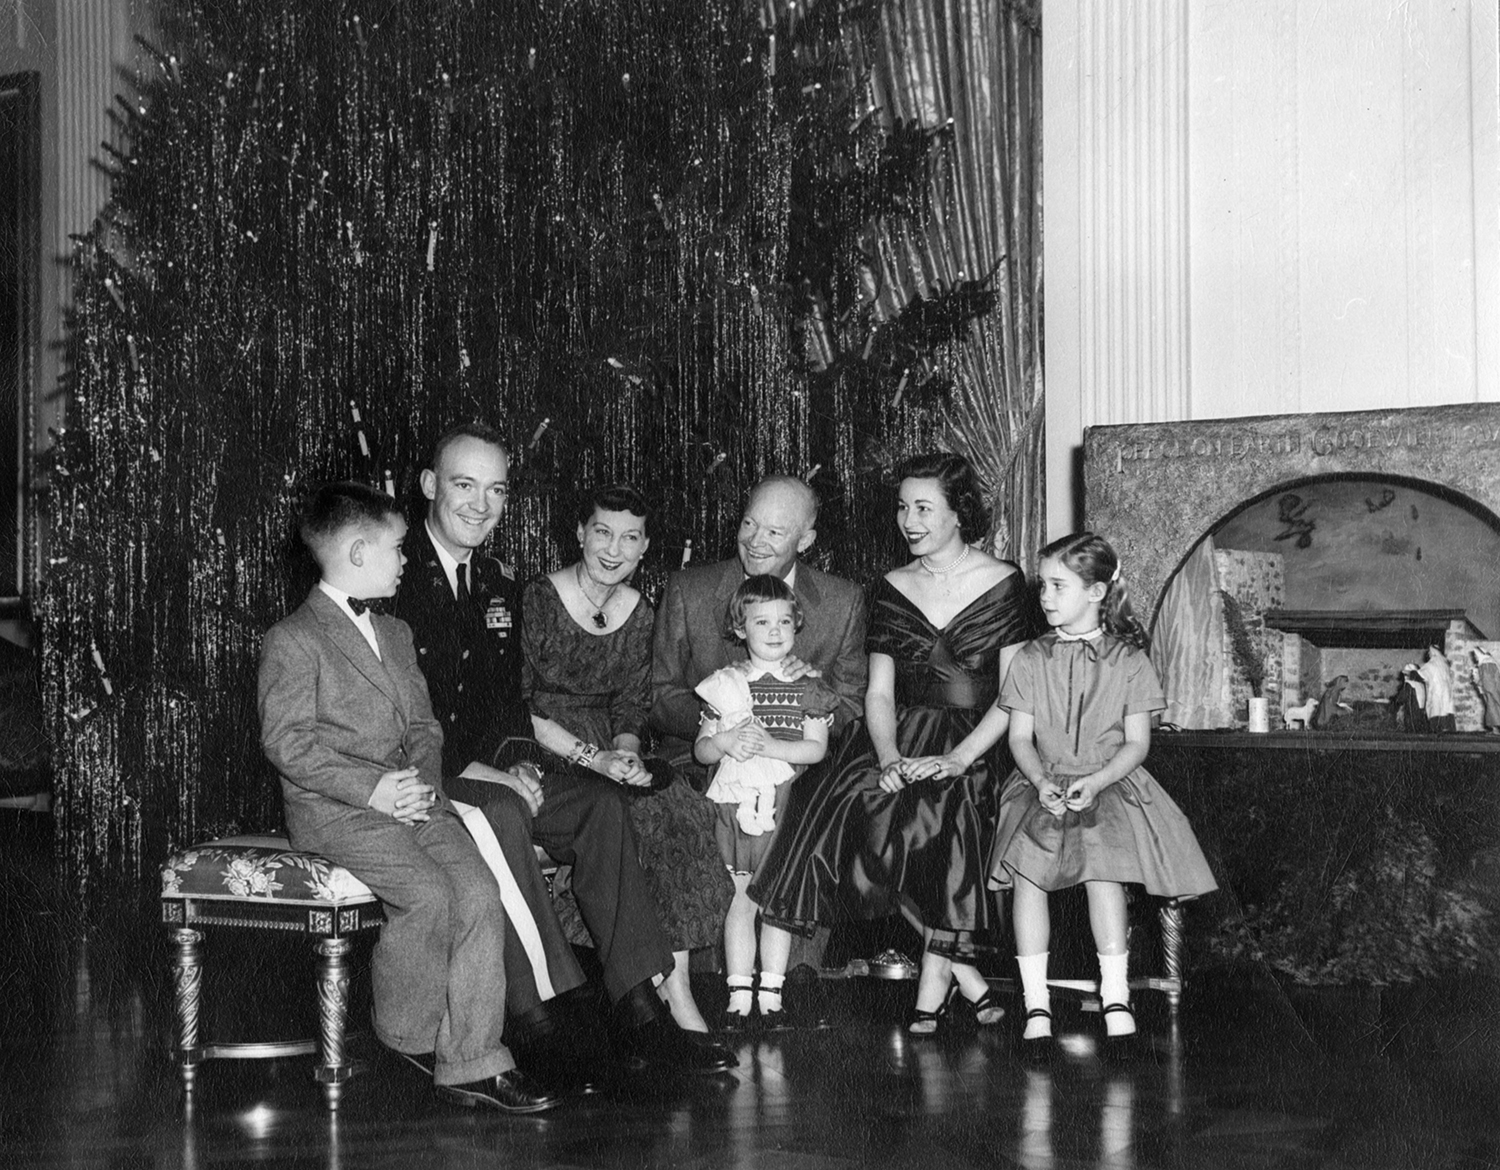 Christmas 1955. From left to right, David Eisenhower, John Eisenhower, First Lady Mamie Eisenhower, President Dwight Eisenhower, Susan Eisenhower, Barbara Eisenhower, and Anne Eisenhower. Photo courtesy of the National Park Service (Abbie Rowe).